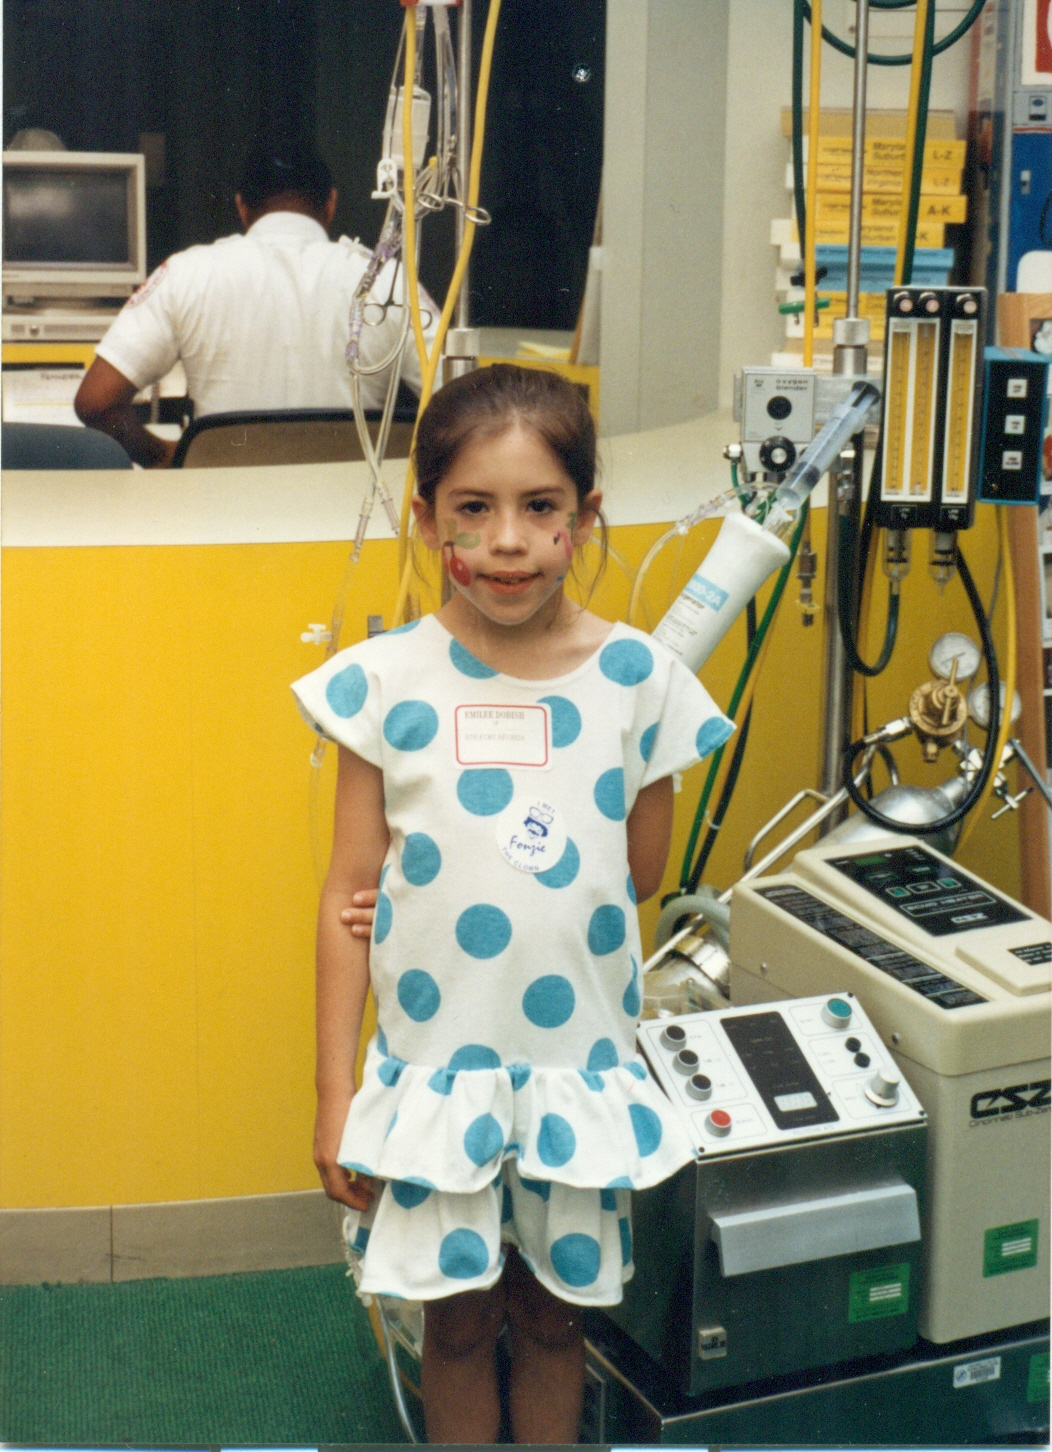 Emilee next to the ECMO equipment that saved her life as a baby.